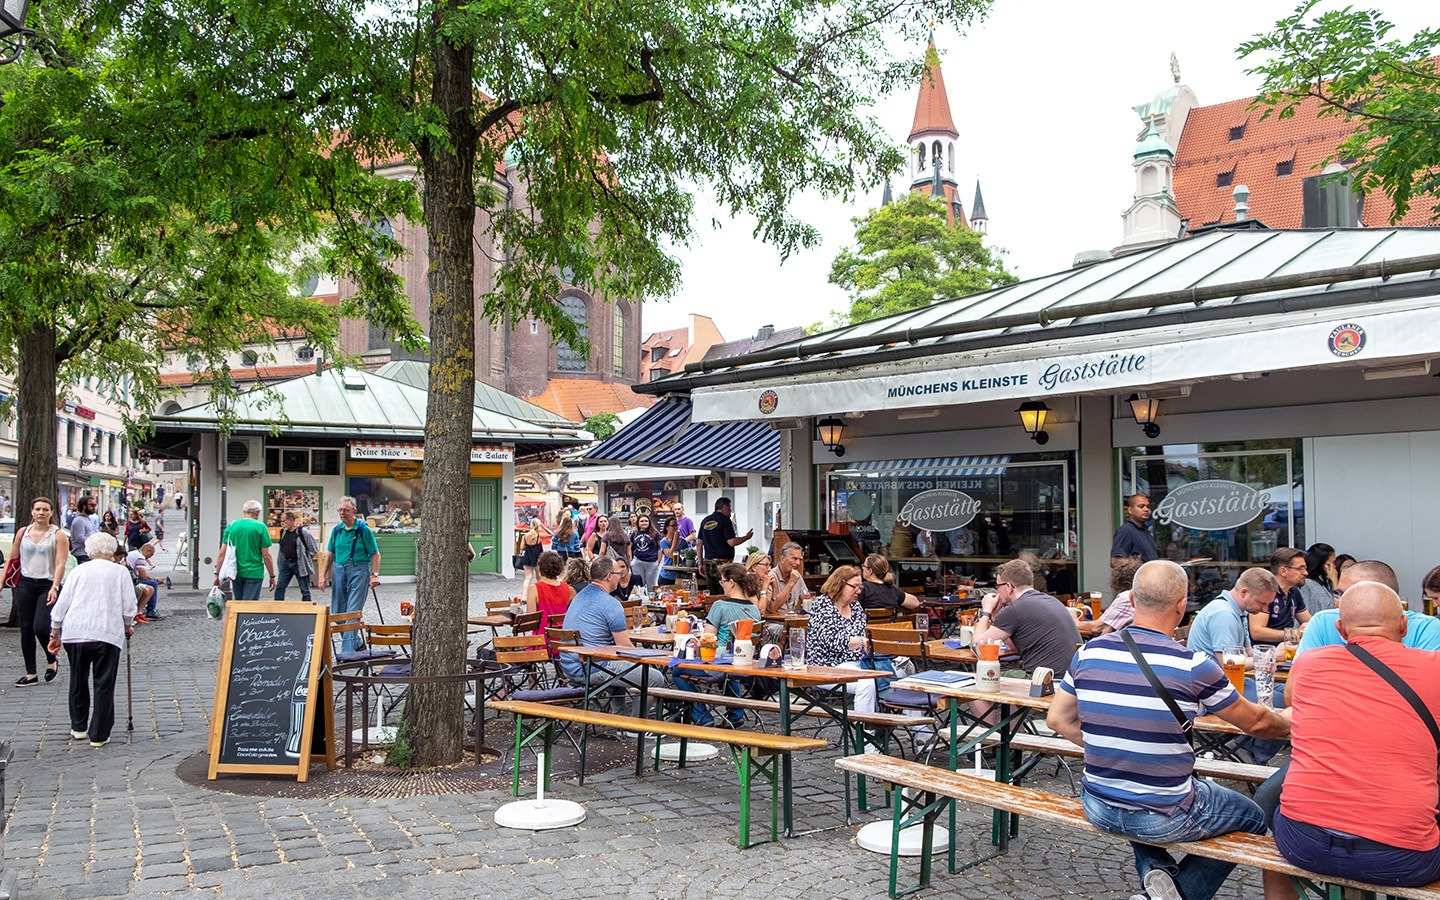 The Viktualienmarkt food market in Munich